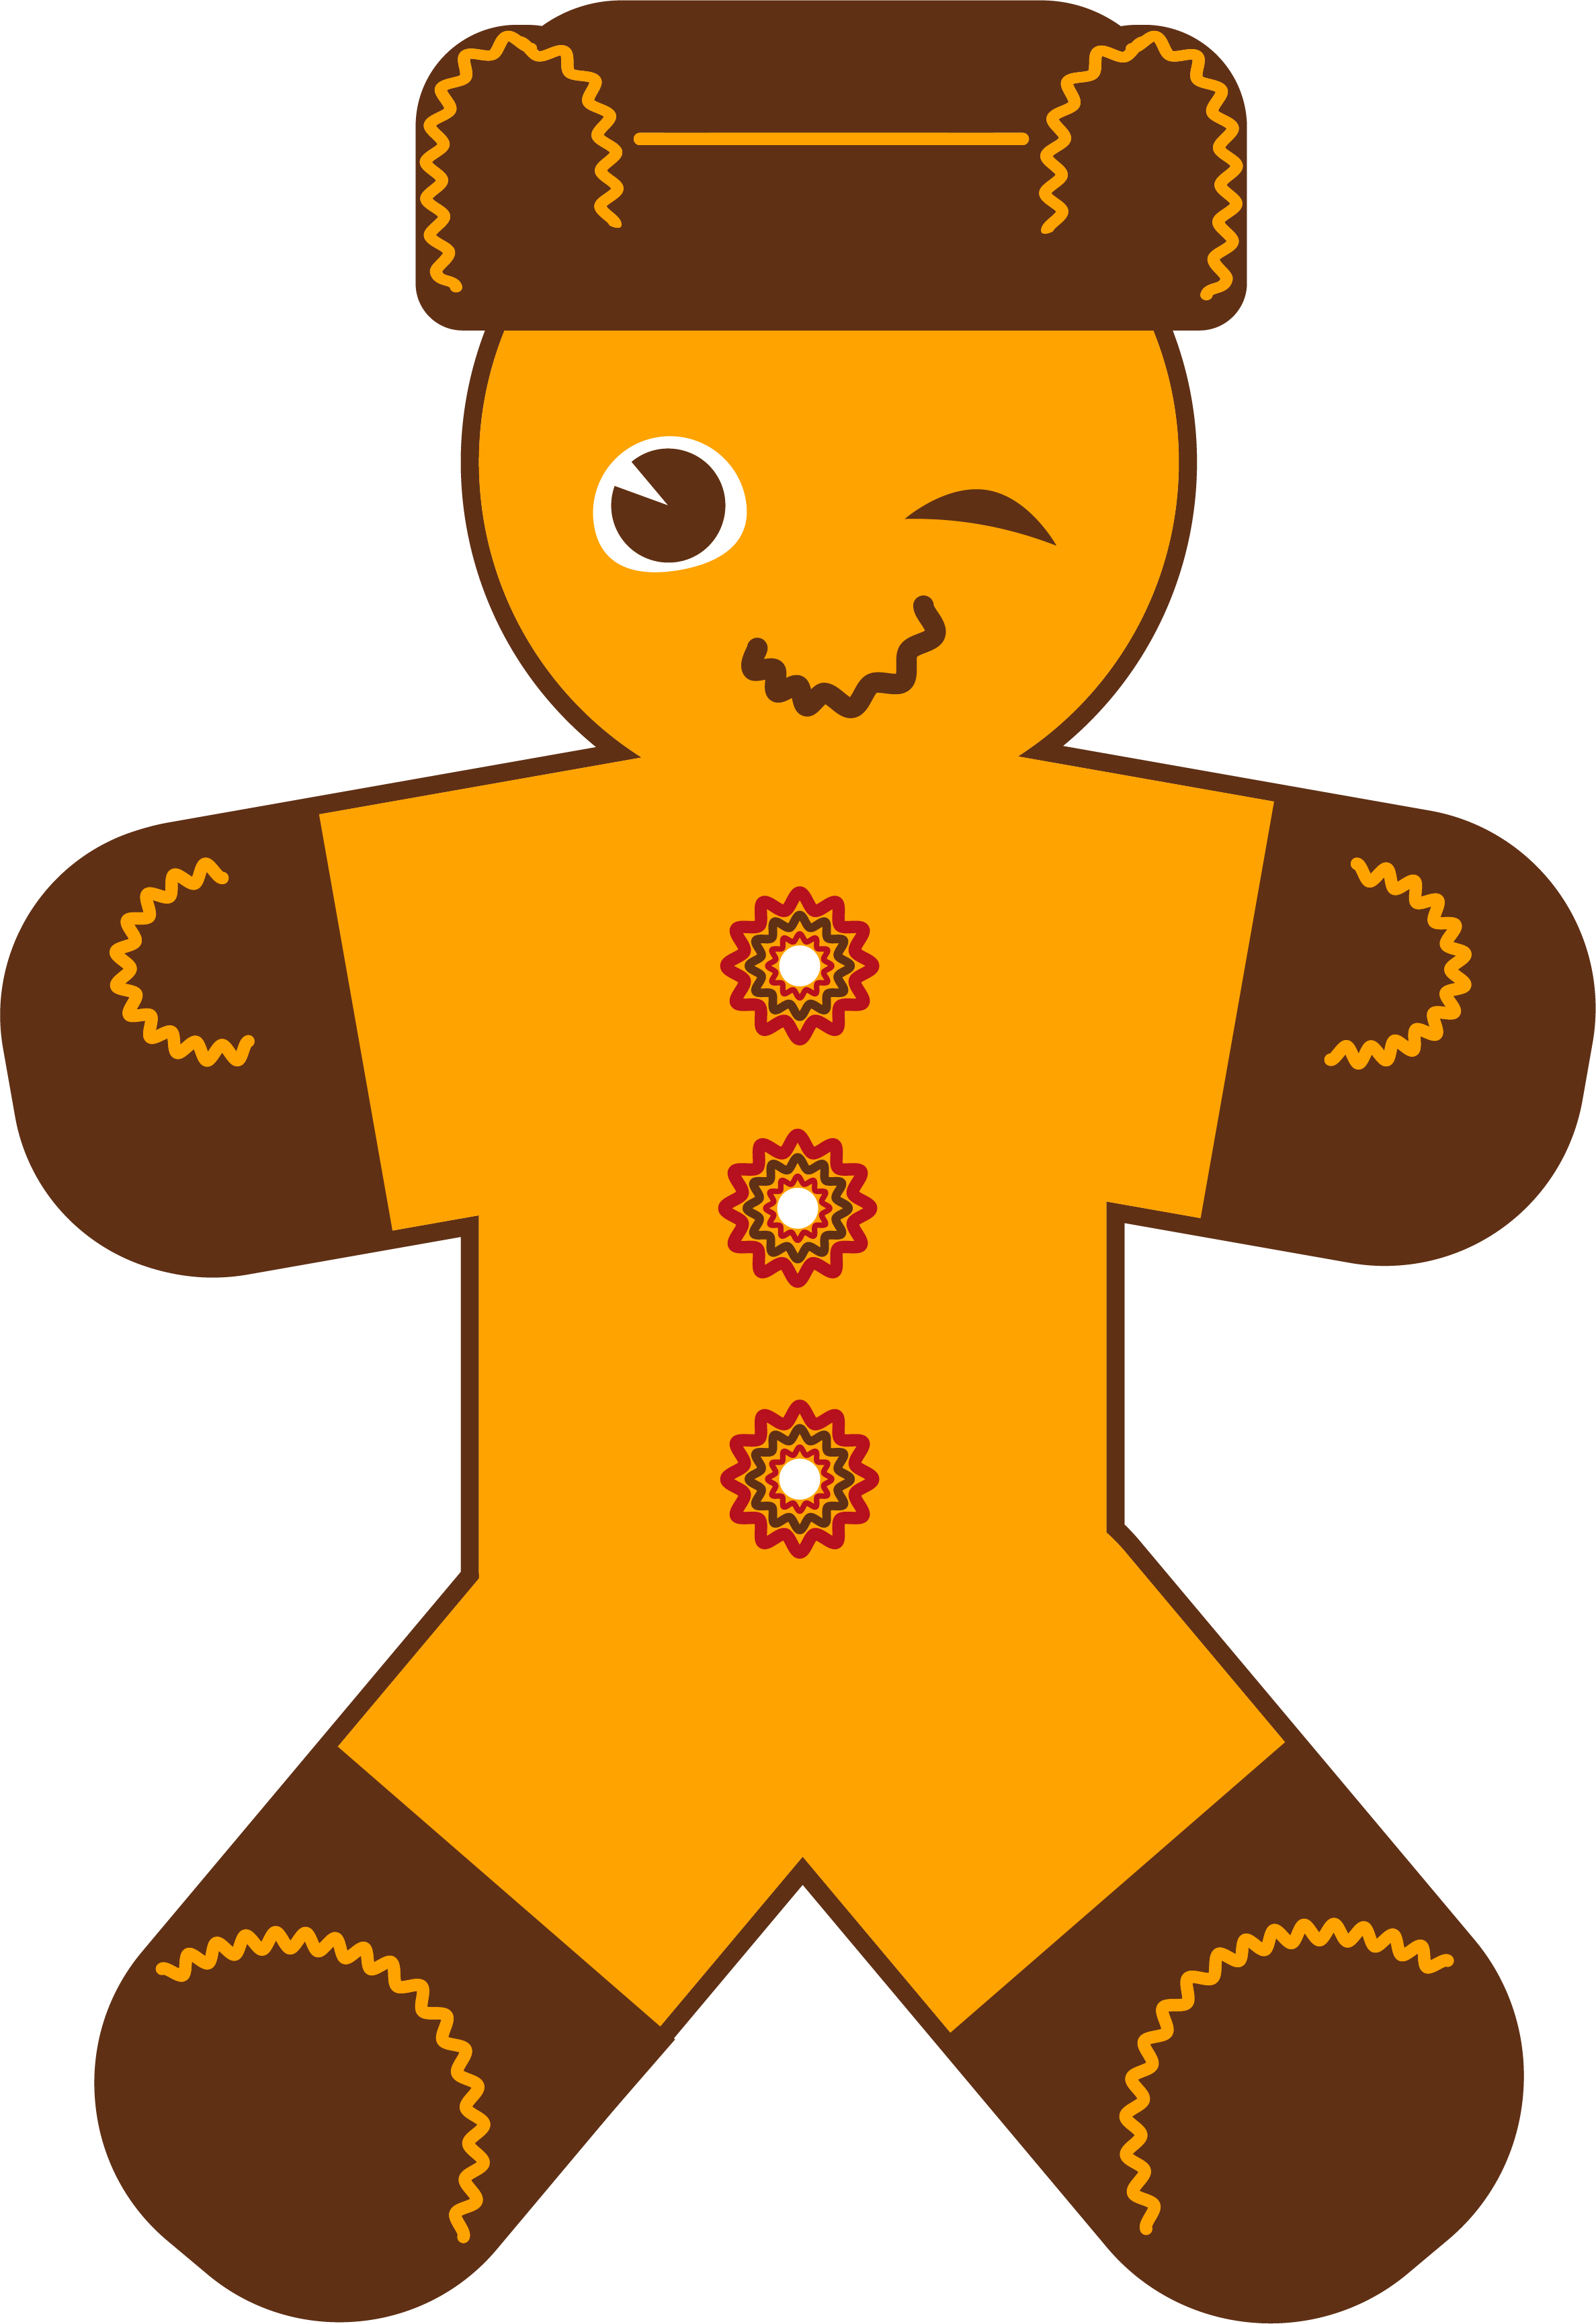 New Year Gingerbread Man example image 2